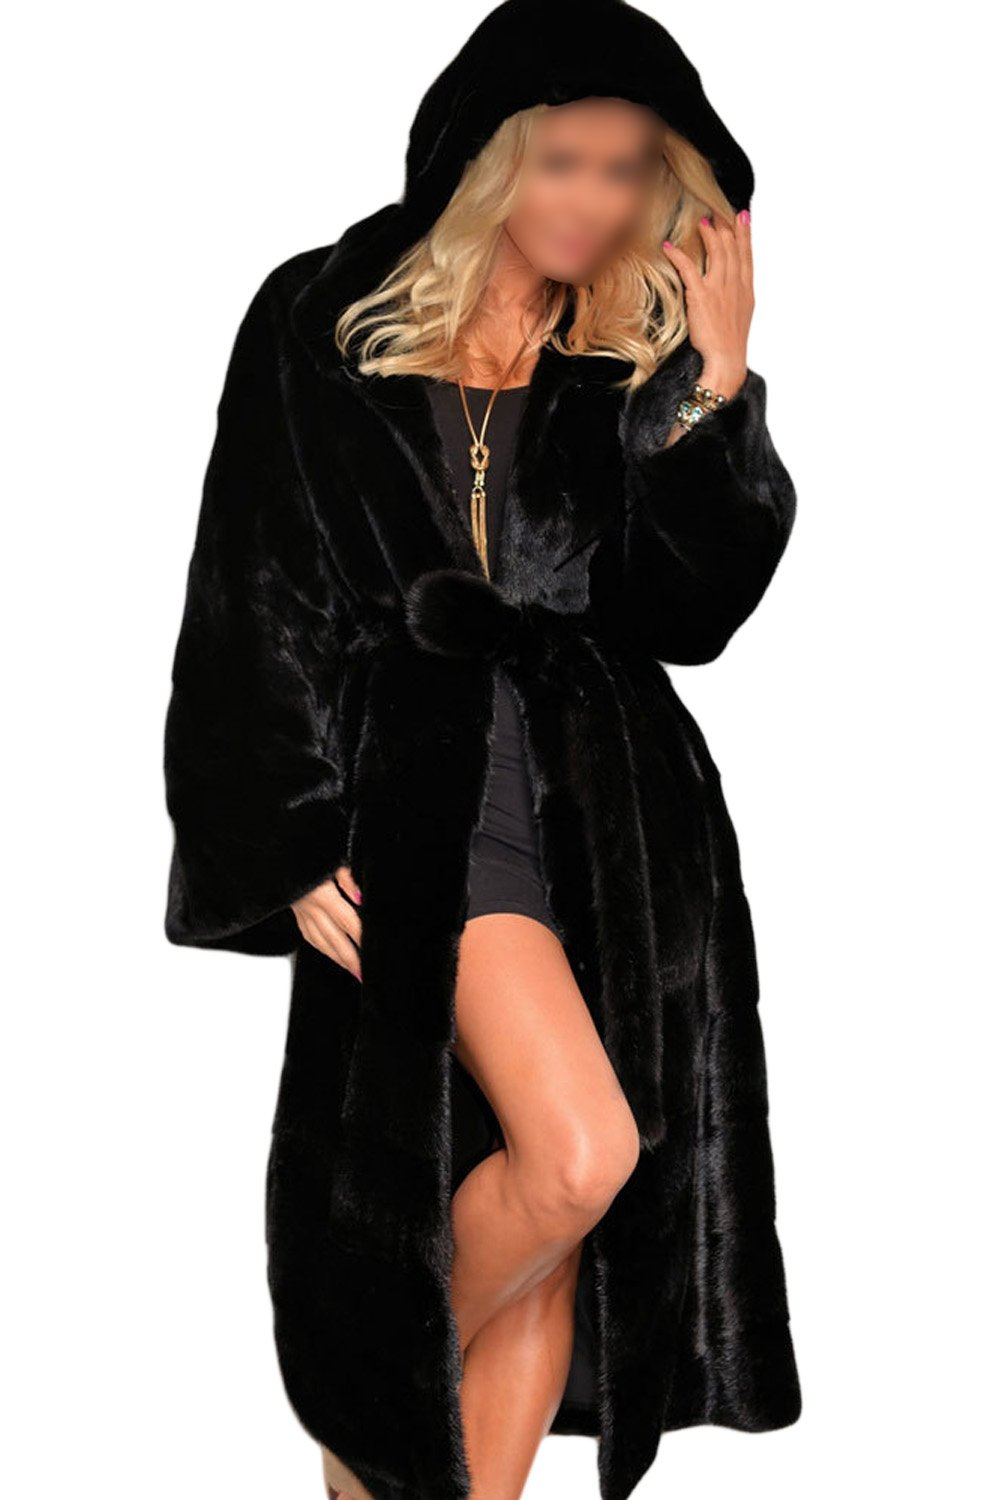 YACUN Women Winter Faux Fur Parkas Hooded Long Trench Coat Outwear CAChjT0561